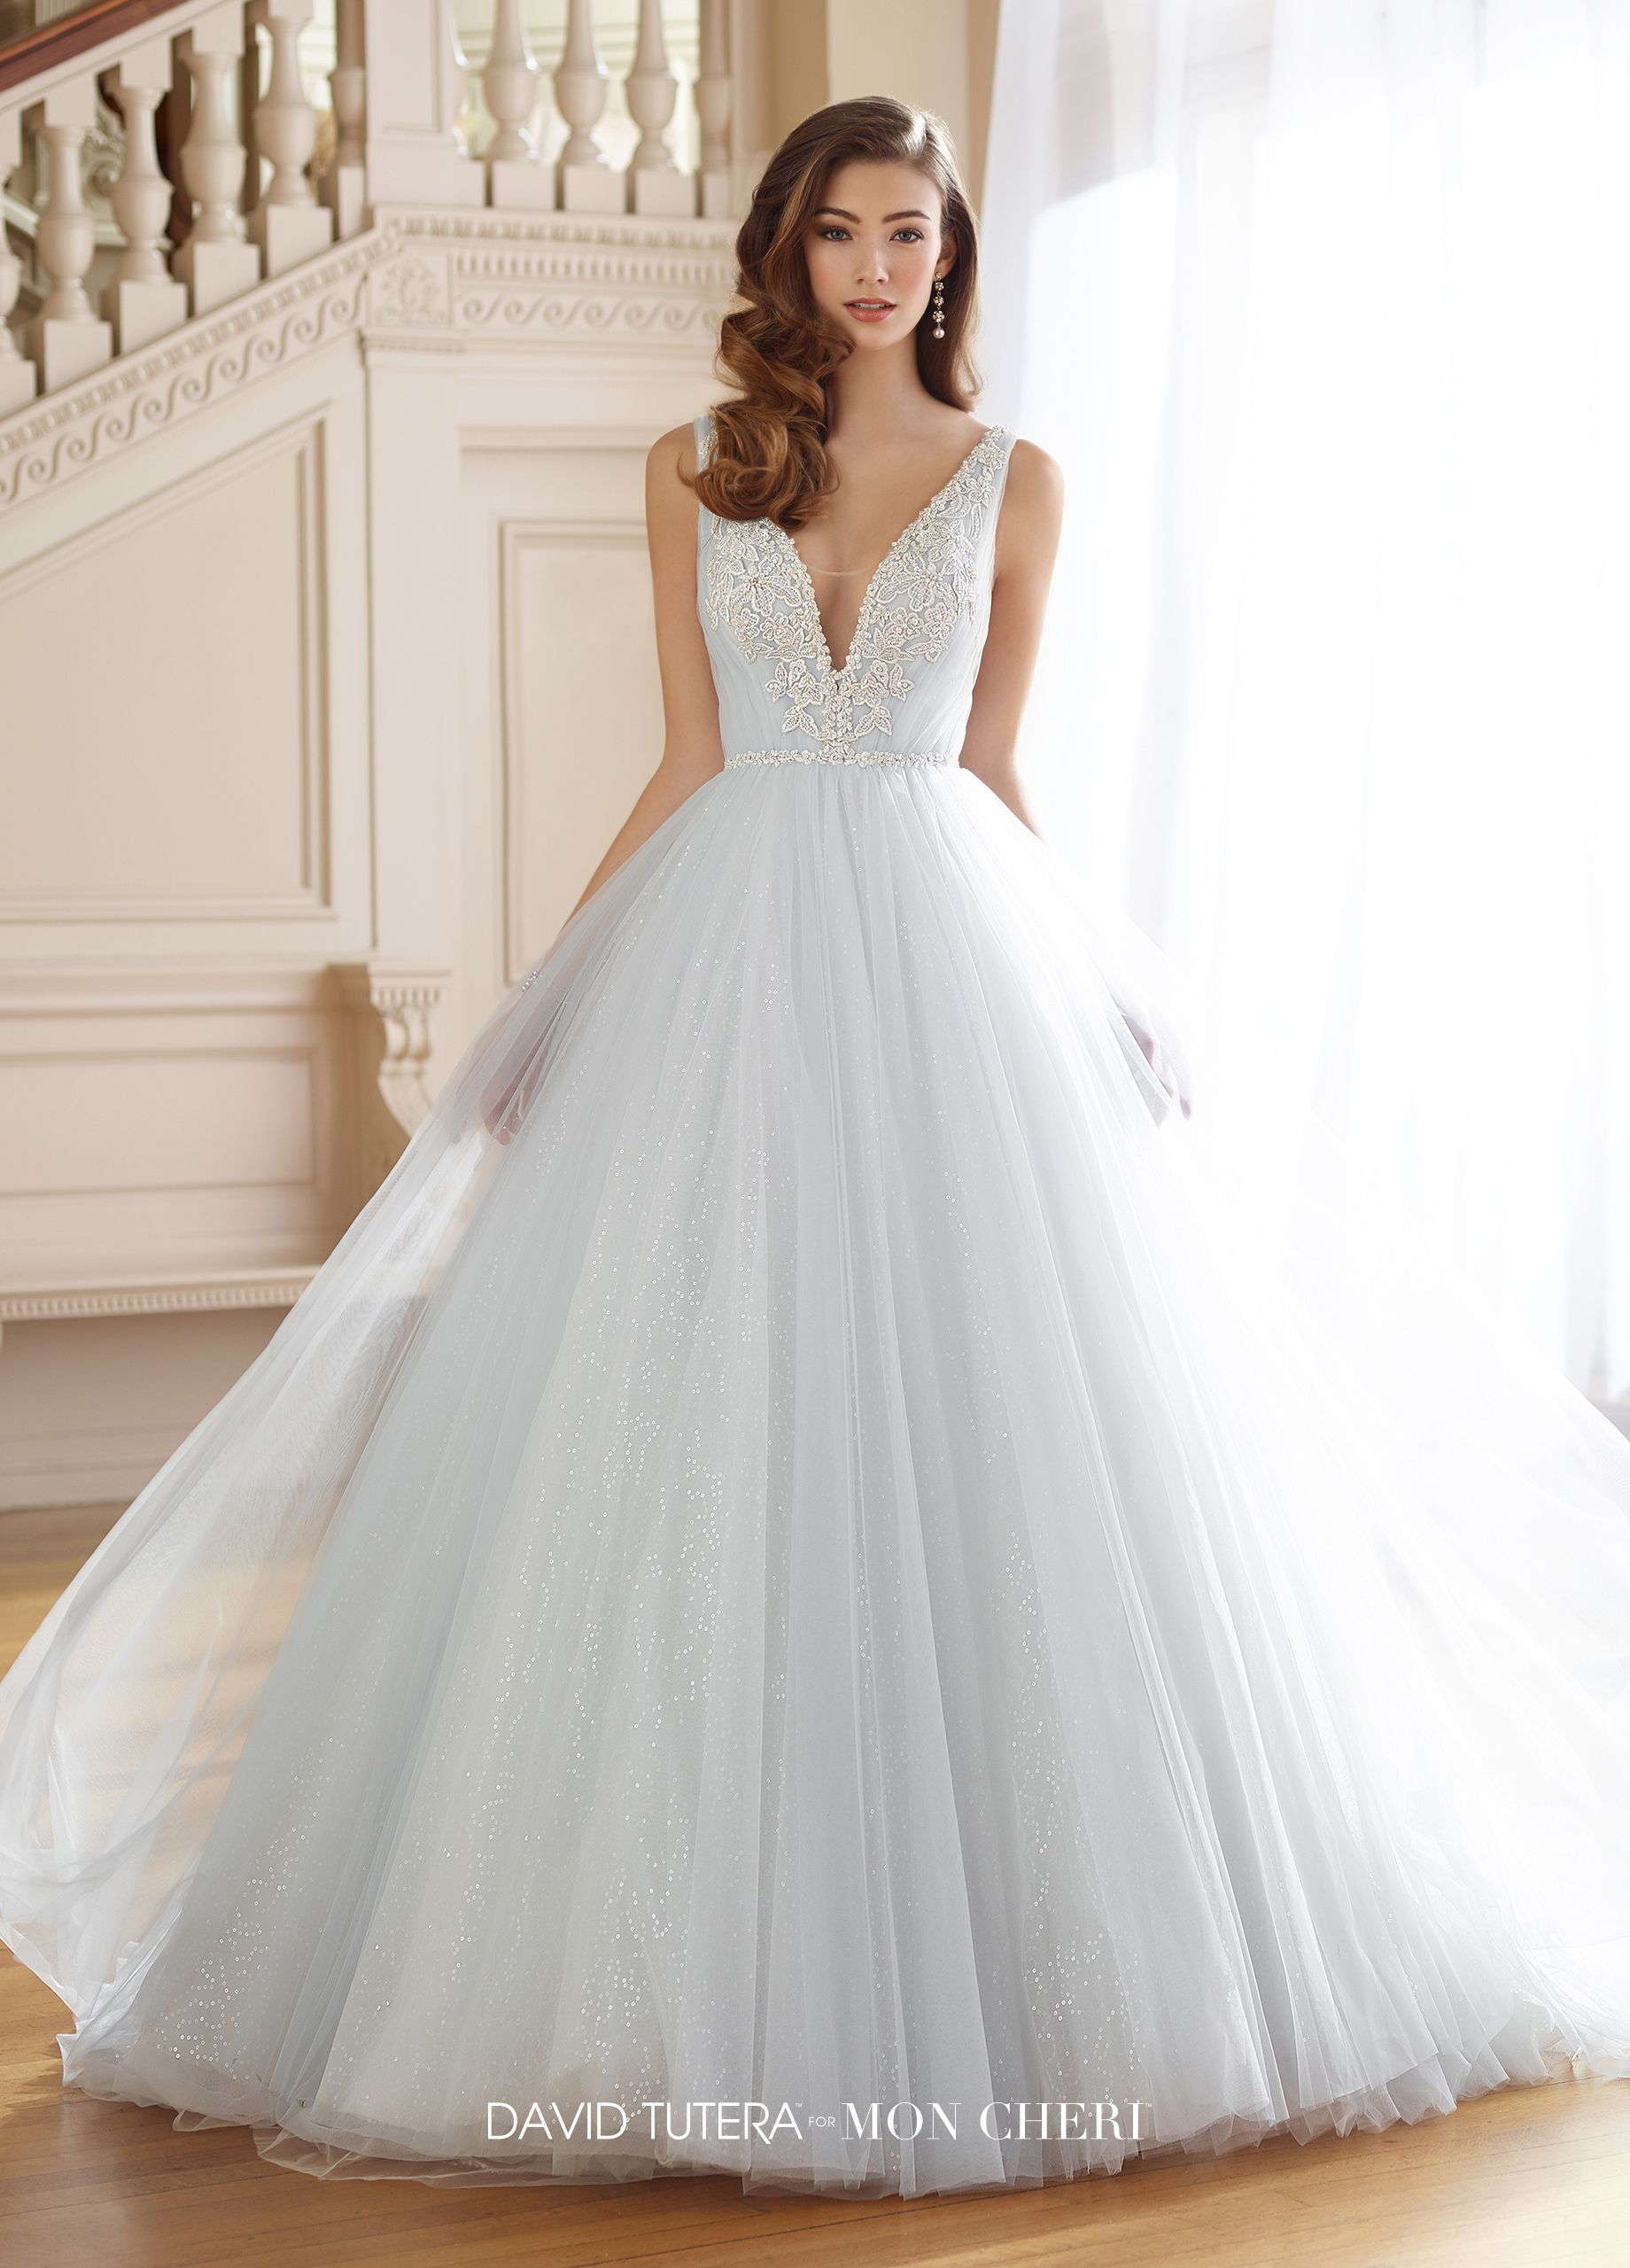 mon cheri bridals 217217 Rena - Sleeveless tulle and sequin tulle ball gown  with hand-beaded shoulder straps 46c38e359964